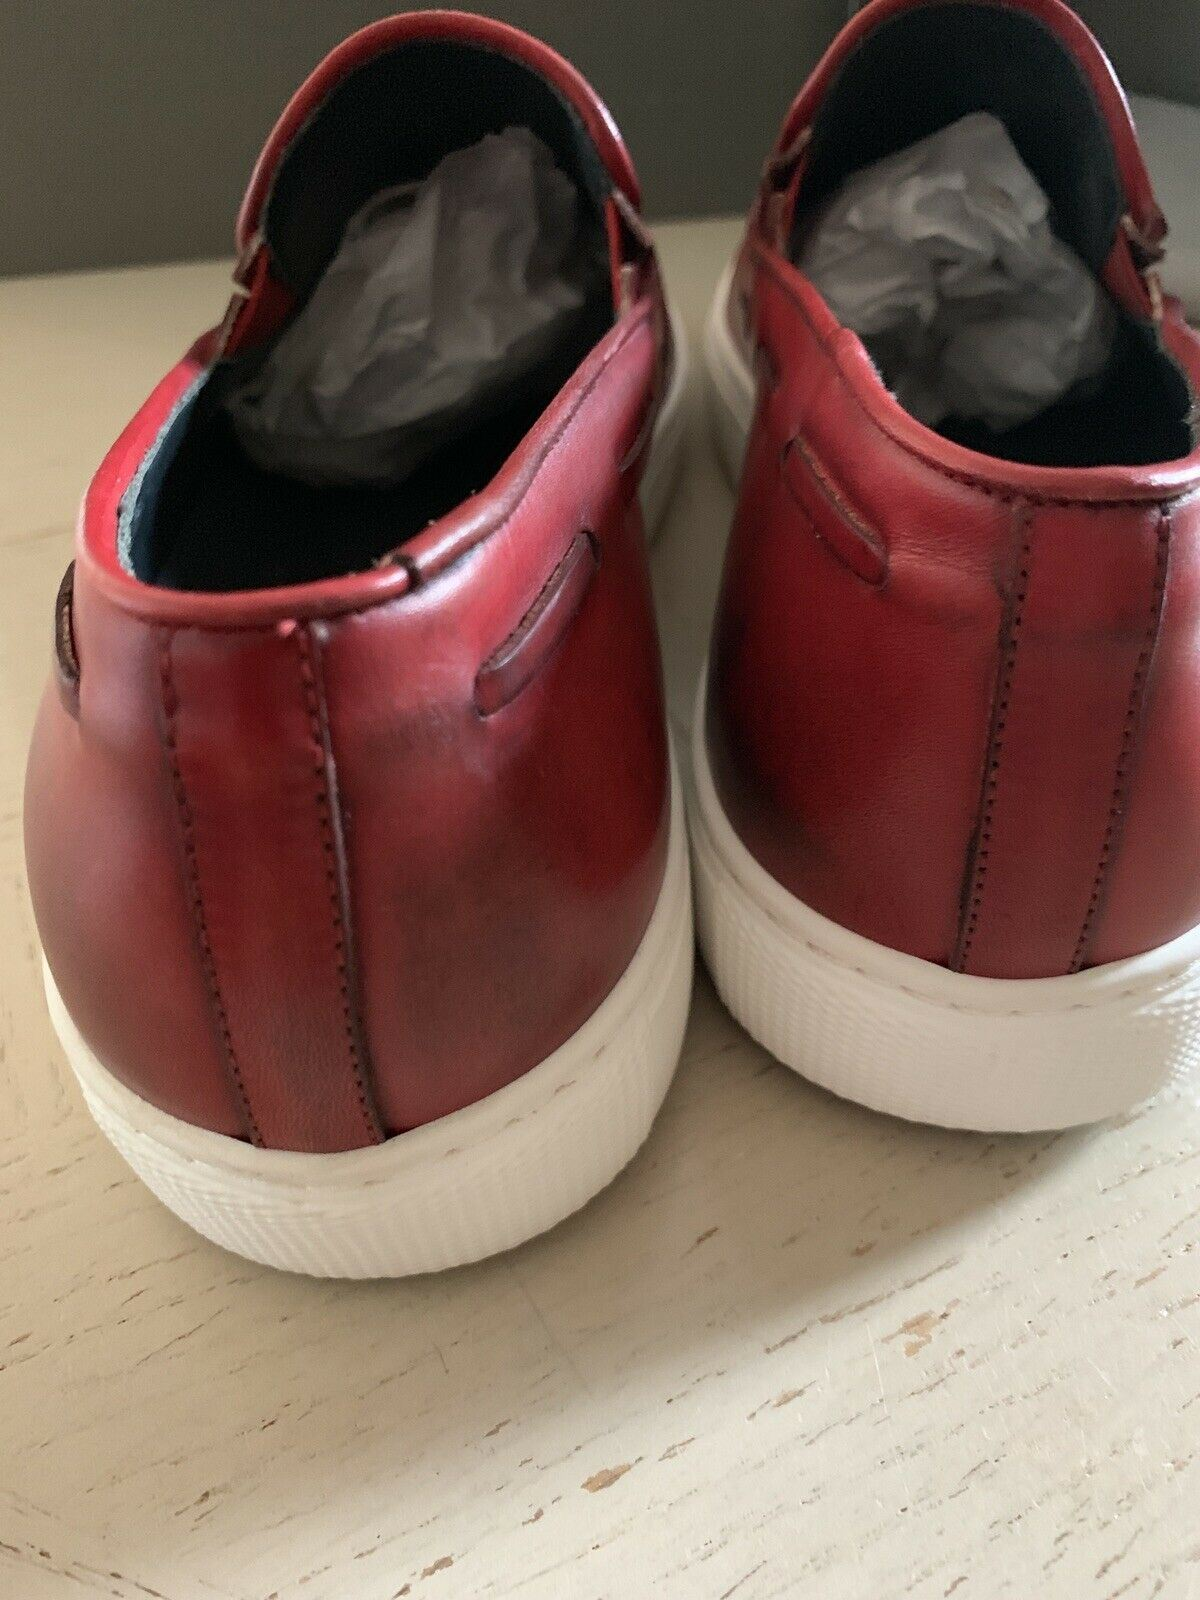 New $650 Canali Mens Leather Sneakers Shoes Burgundy 9 US ( 42 Eu ) Italy